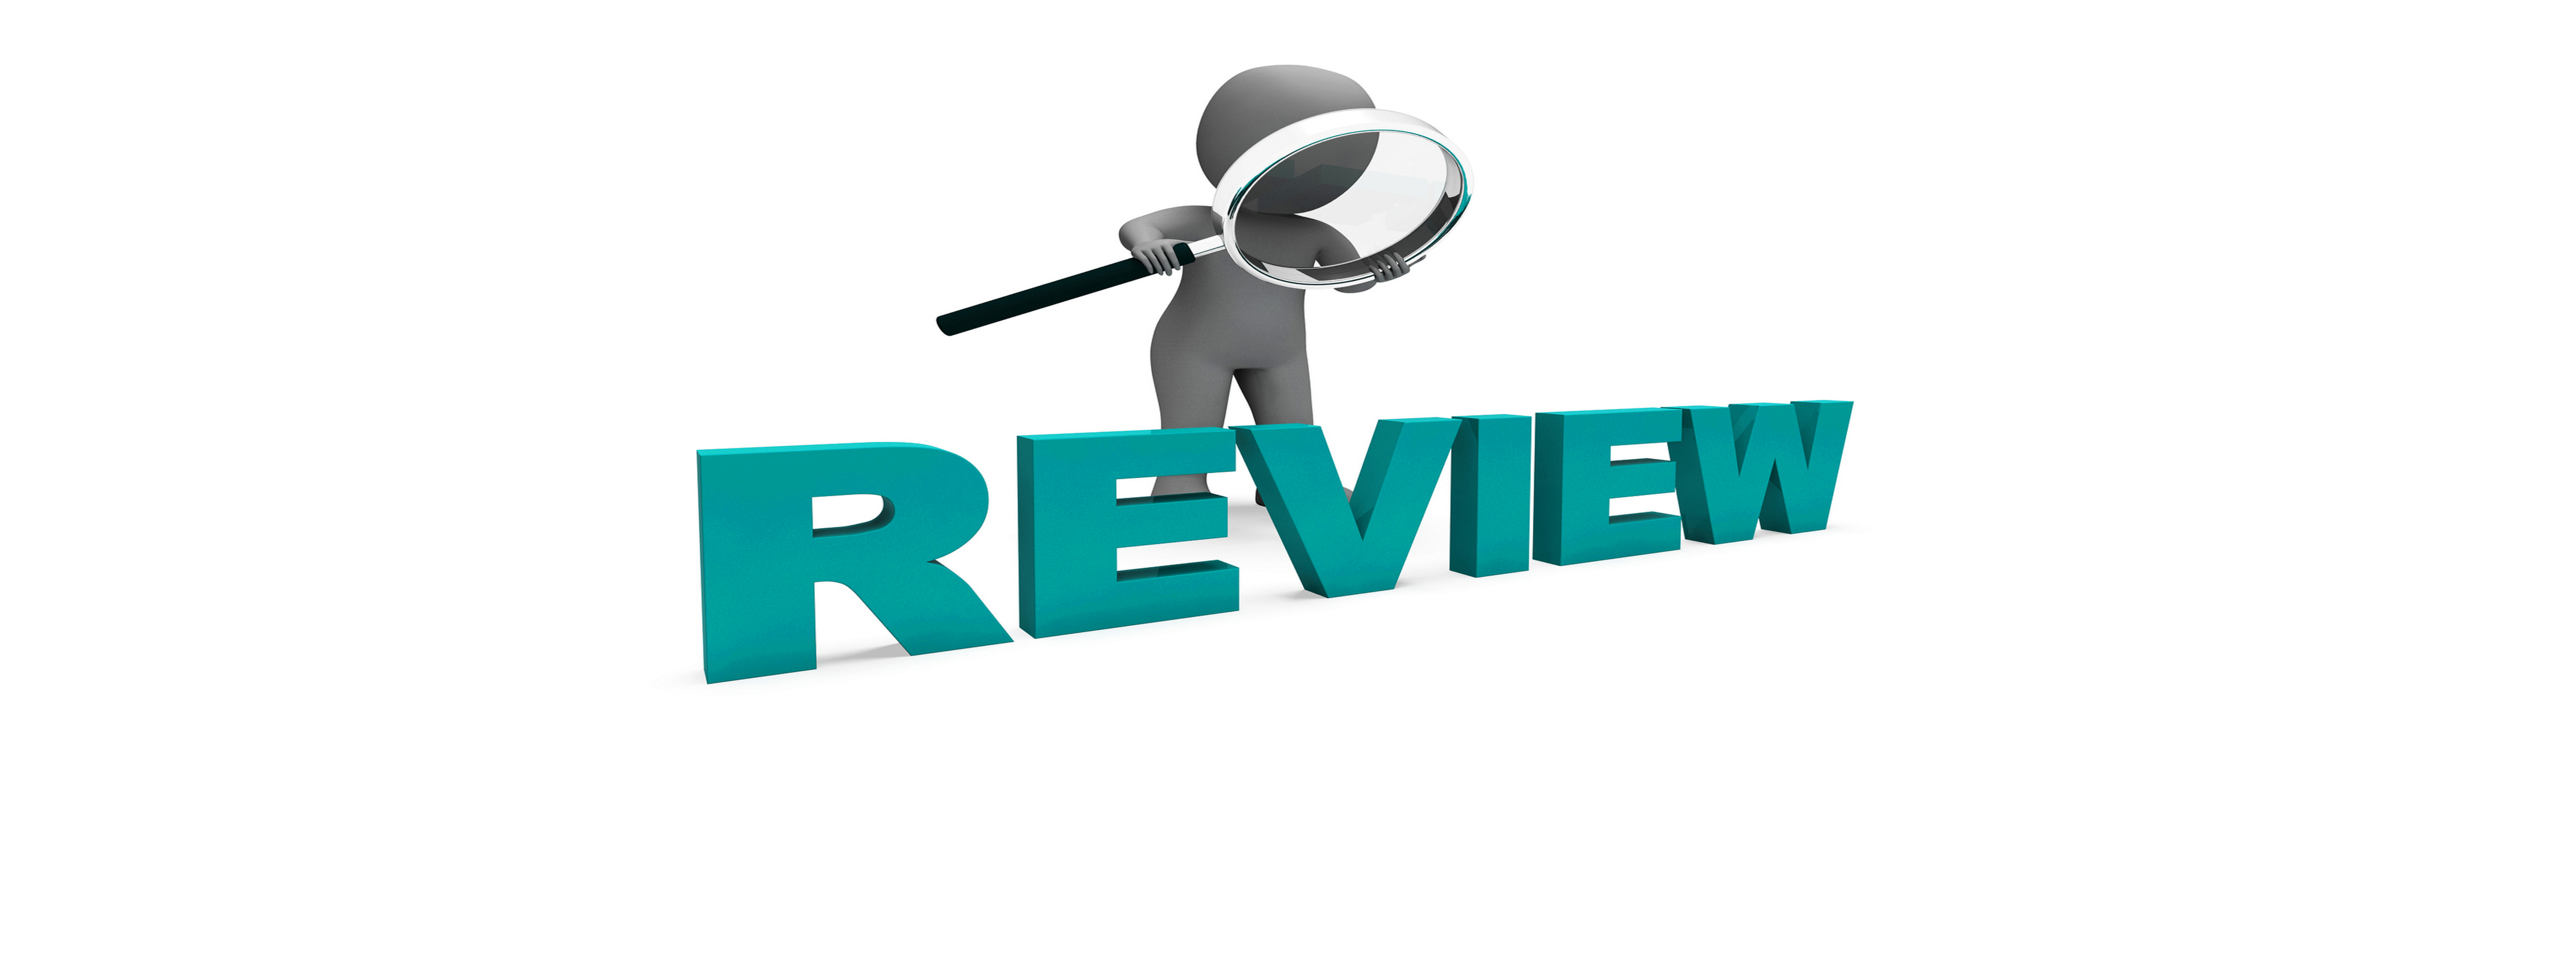 What Makes A Review Effective To A Consumer?   Pinterest   Truths